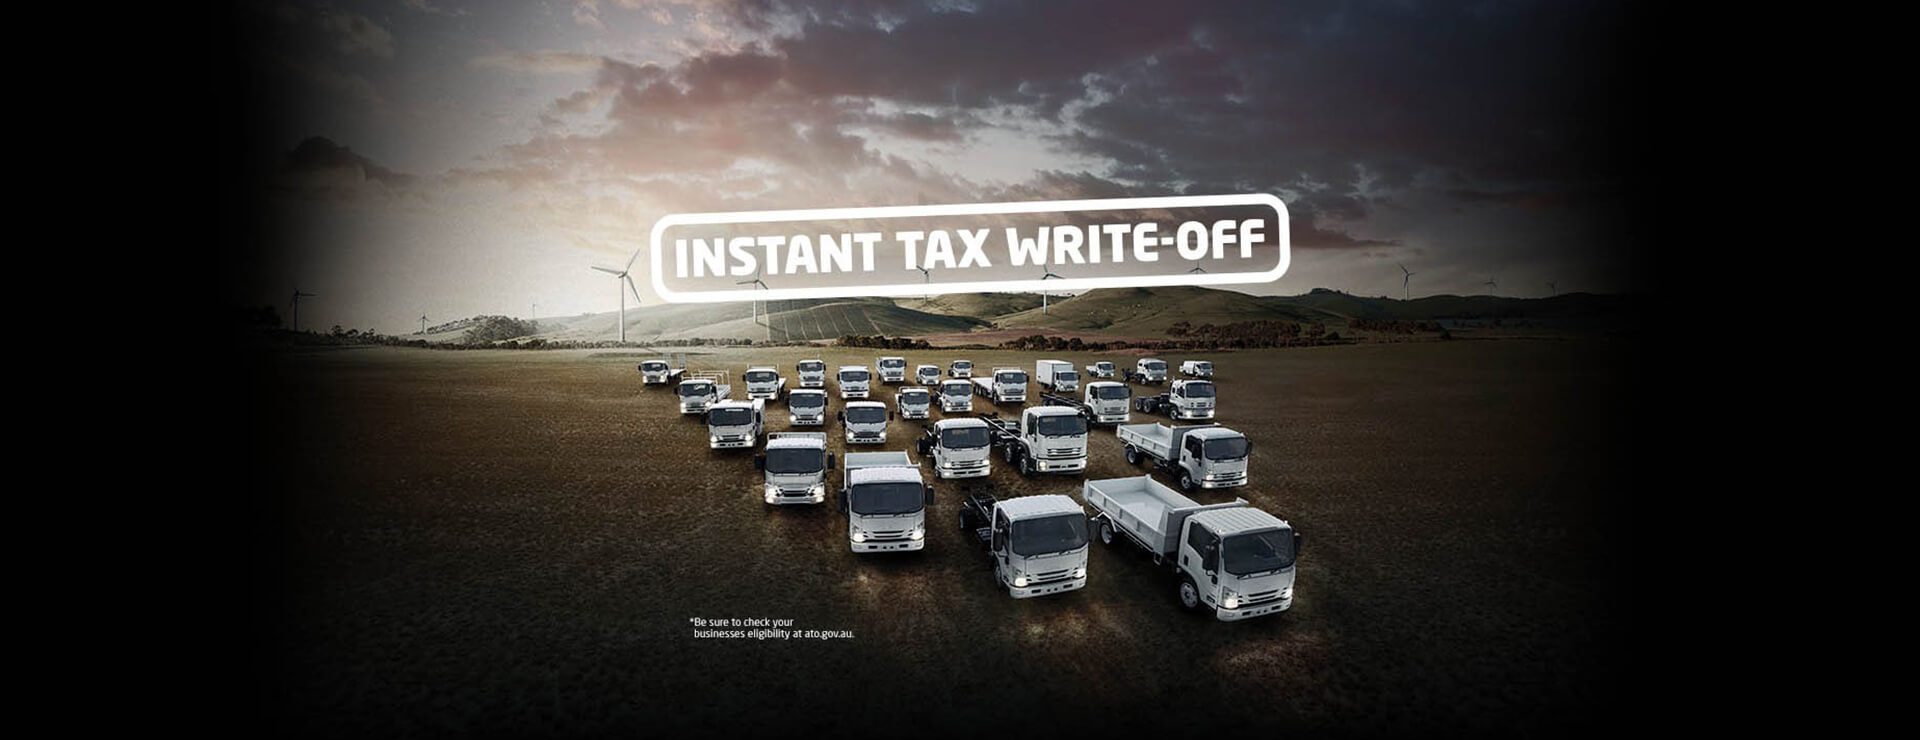 Whit the instant tax write-off, there's never been a better time to buy an Isuzu.